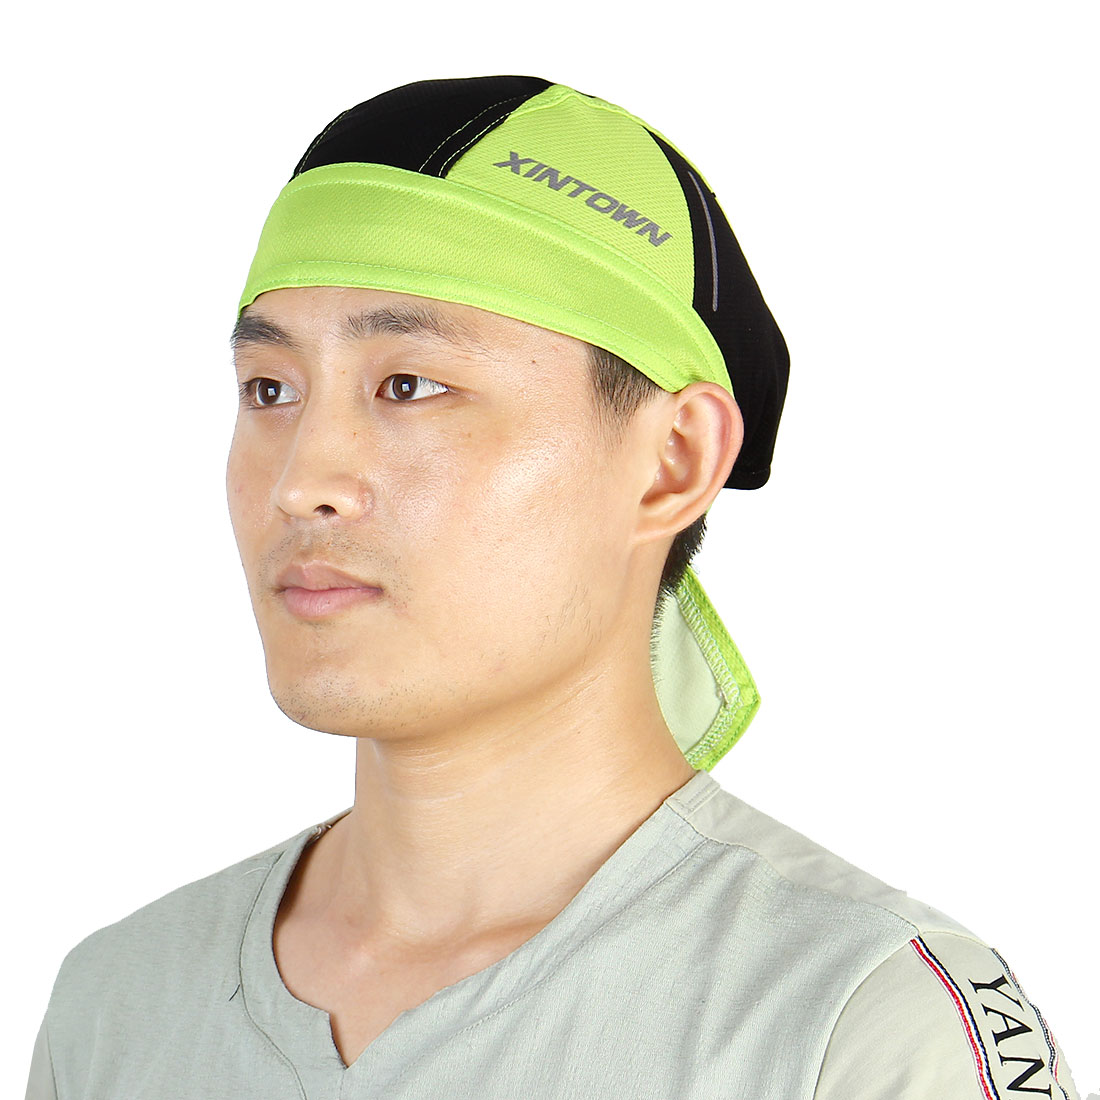 XINTOWN Authorized Adult Unisex Quick Dry Headscarf Cap Cycling Riding Sports Pirate Hat